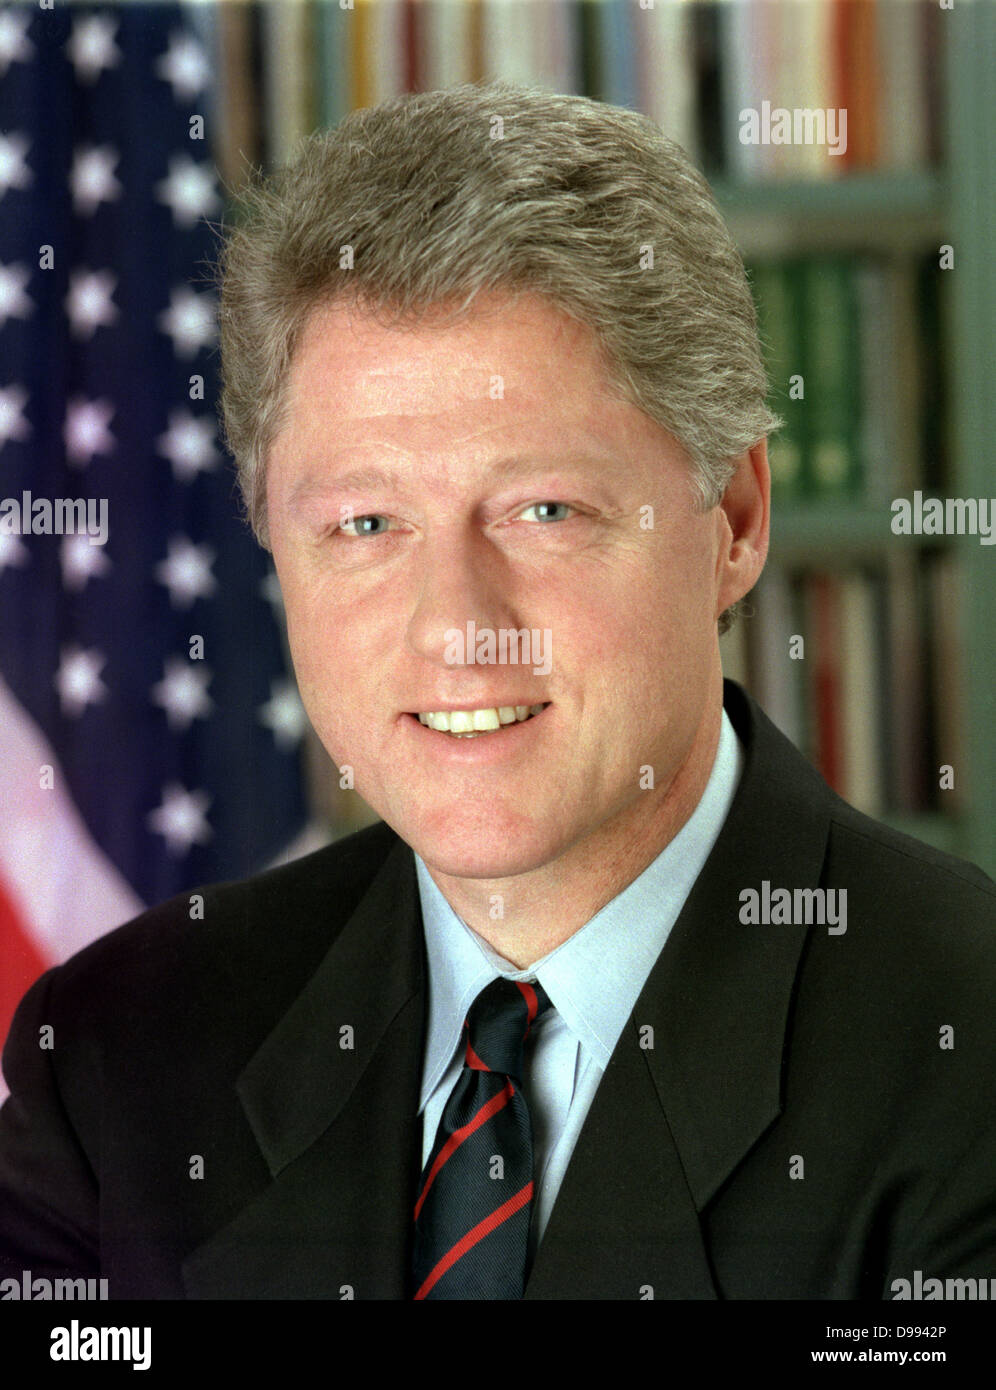 William Jefferson Clinton (born 1946) 42nd President of the United States from 1993-2001. Head-and-shoulders portrait - Stock Image